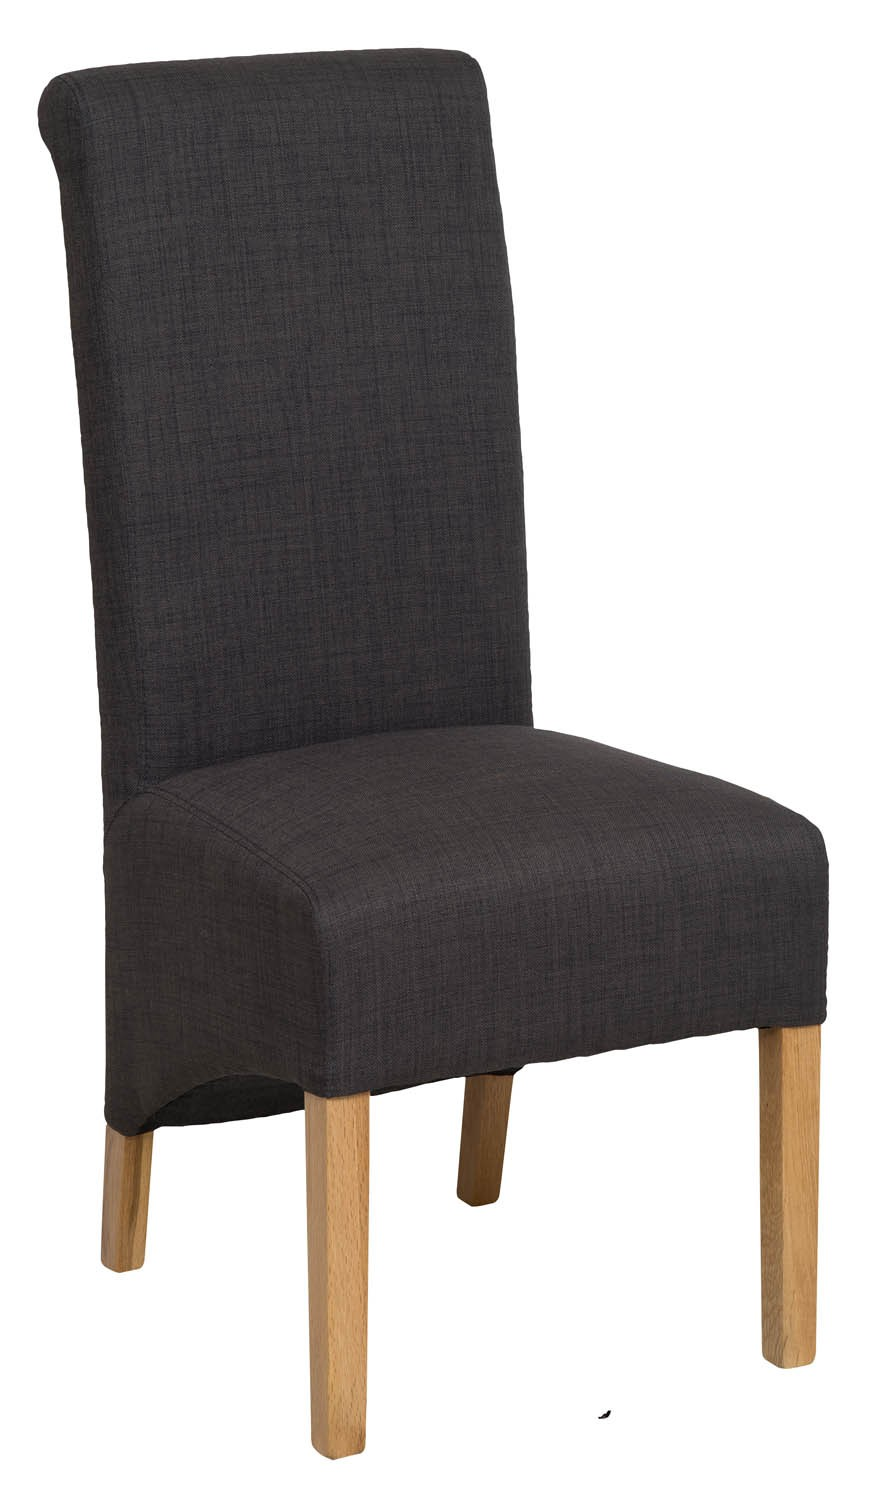 Roll Top Charcoal Grey Fabric Dining Chair 106cm